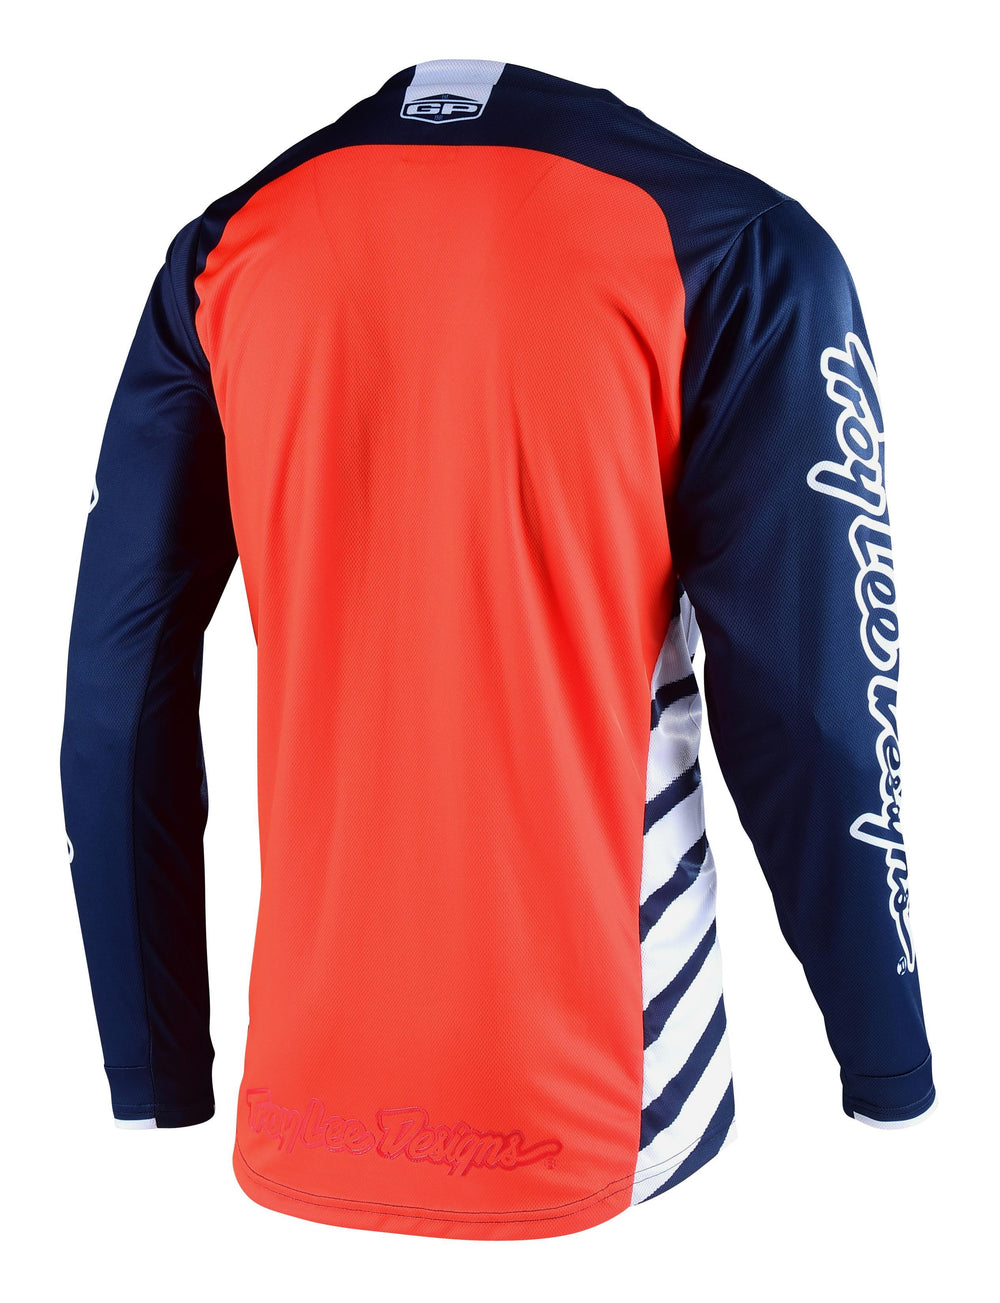 YOUTH GP JERSEY DRIFT NAVY / ORANGE